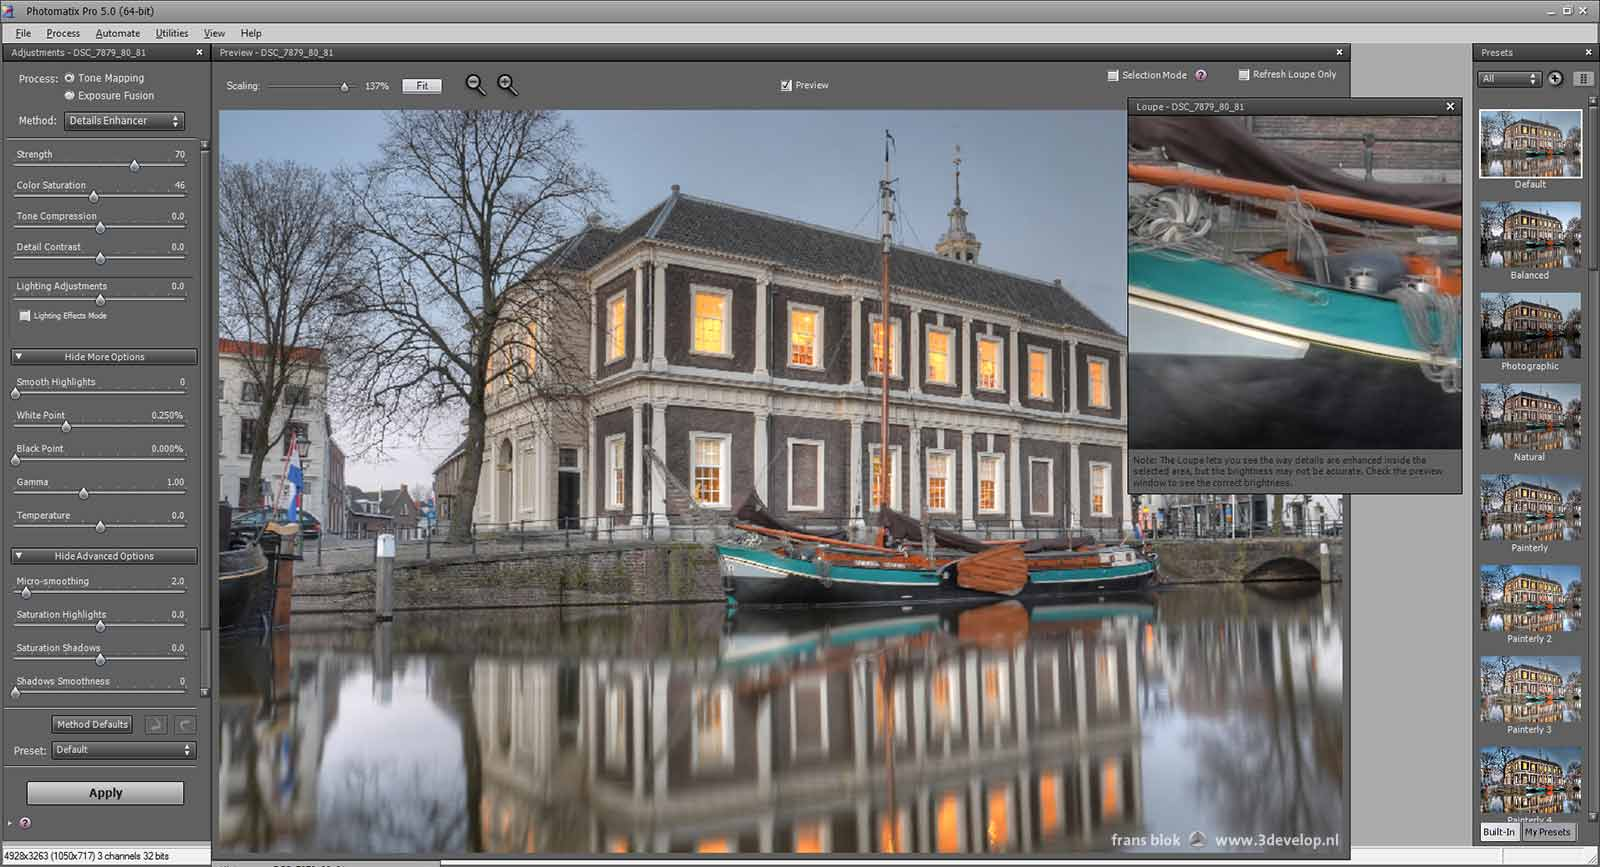 Screenshot of Photomatix Pro, with an HDR photo in progress of the Corn Exchange in Schiedam